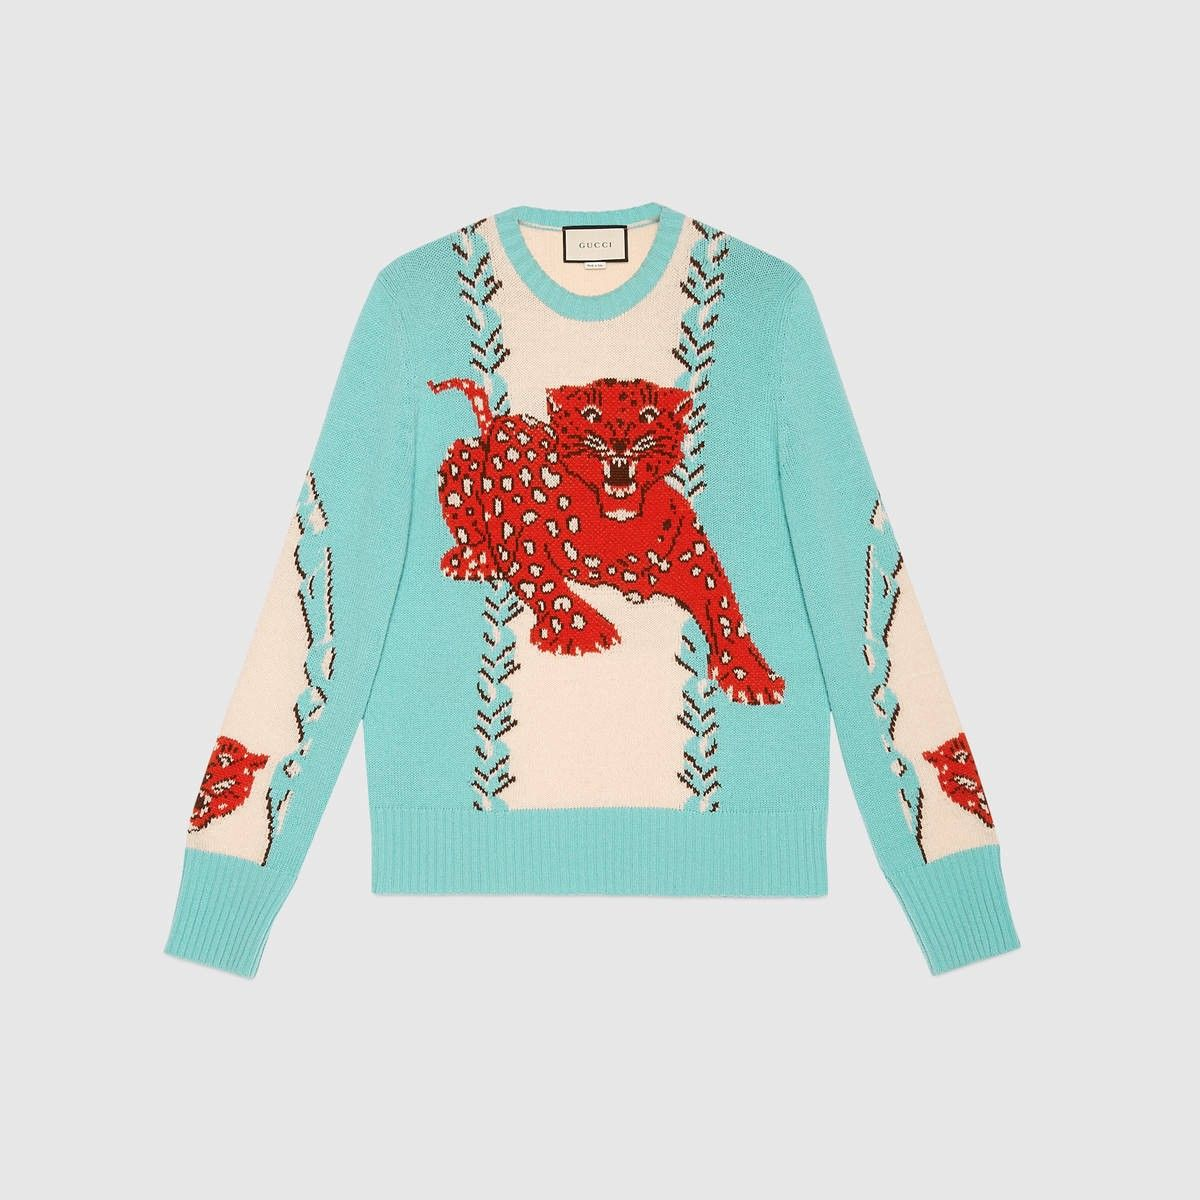 58323bd64 GUCCI Leopard Intarsia Wool Crew Neck Sweater - Light Blue And White Wool. # gucci #cloth #all